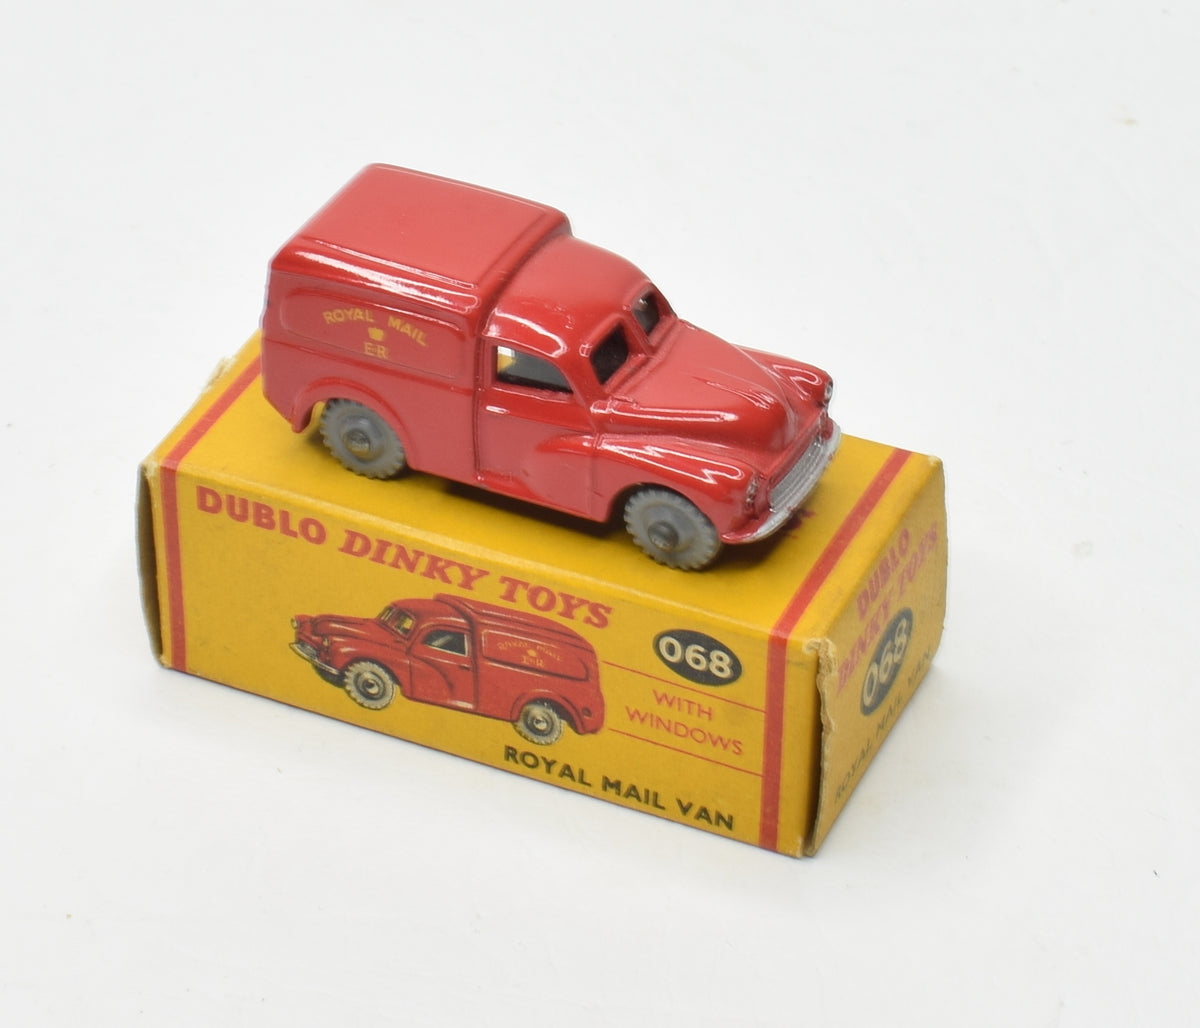 Dublo Dinky toy 068 Royal Mail Van Very Near Mint/Boxed